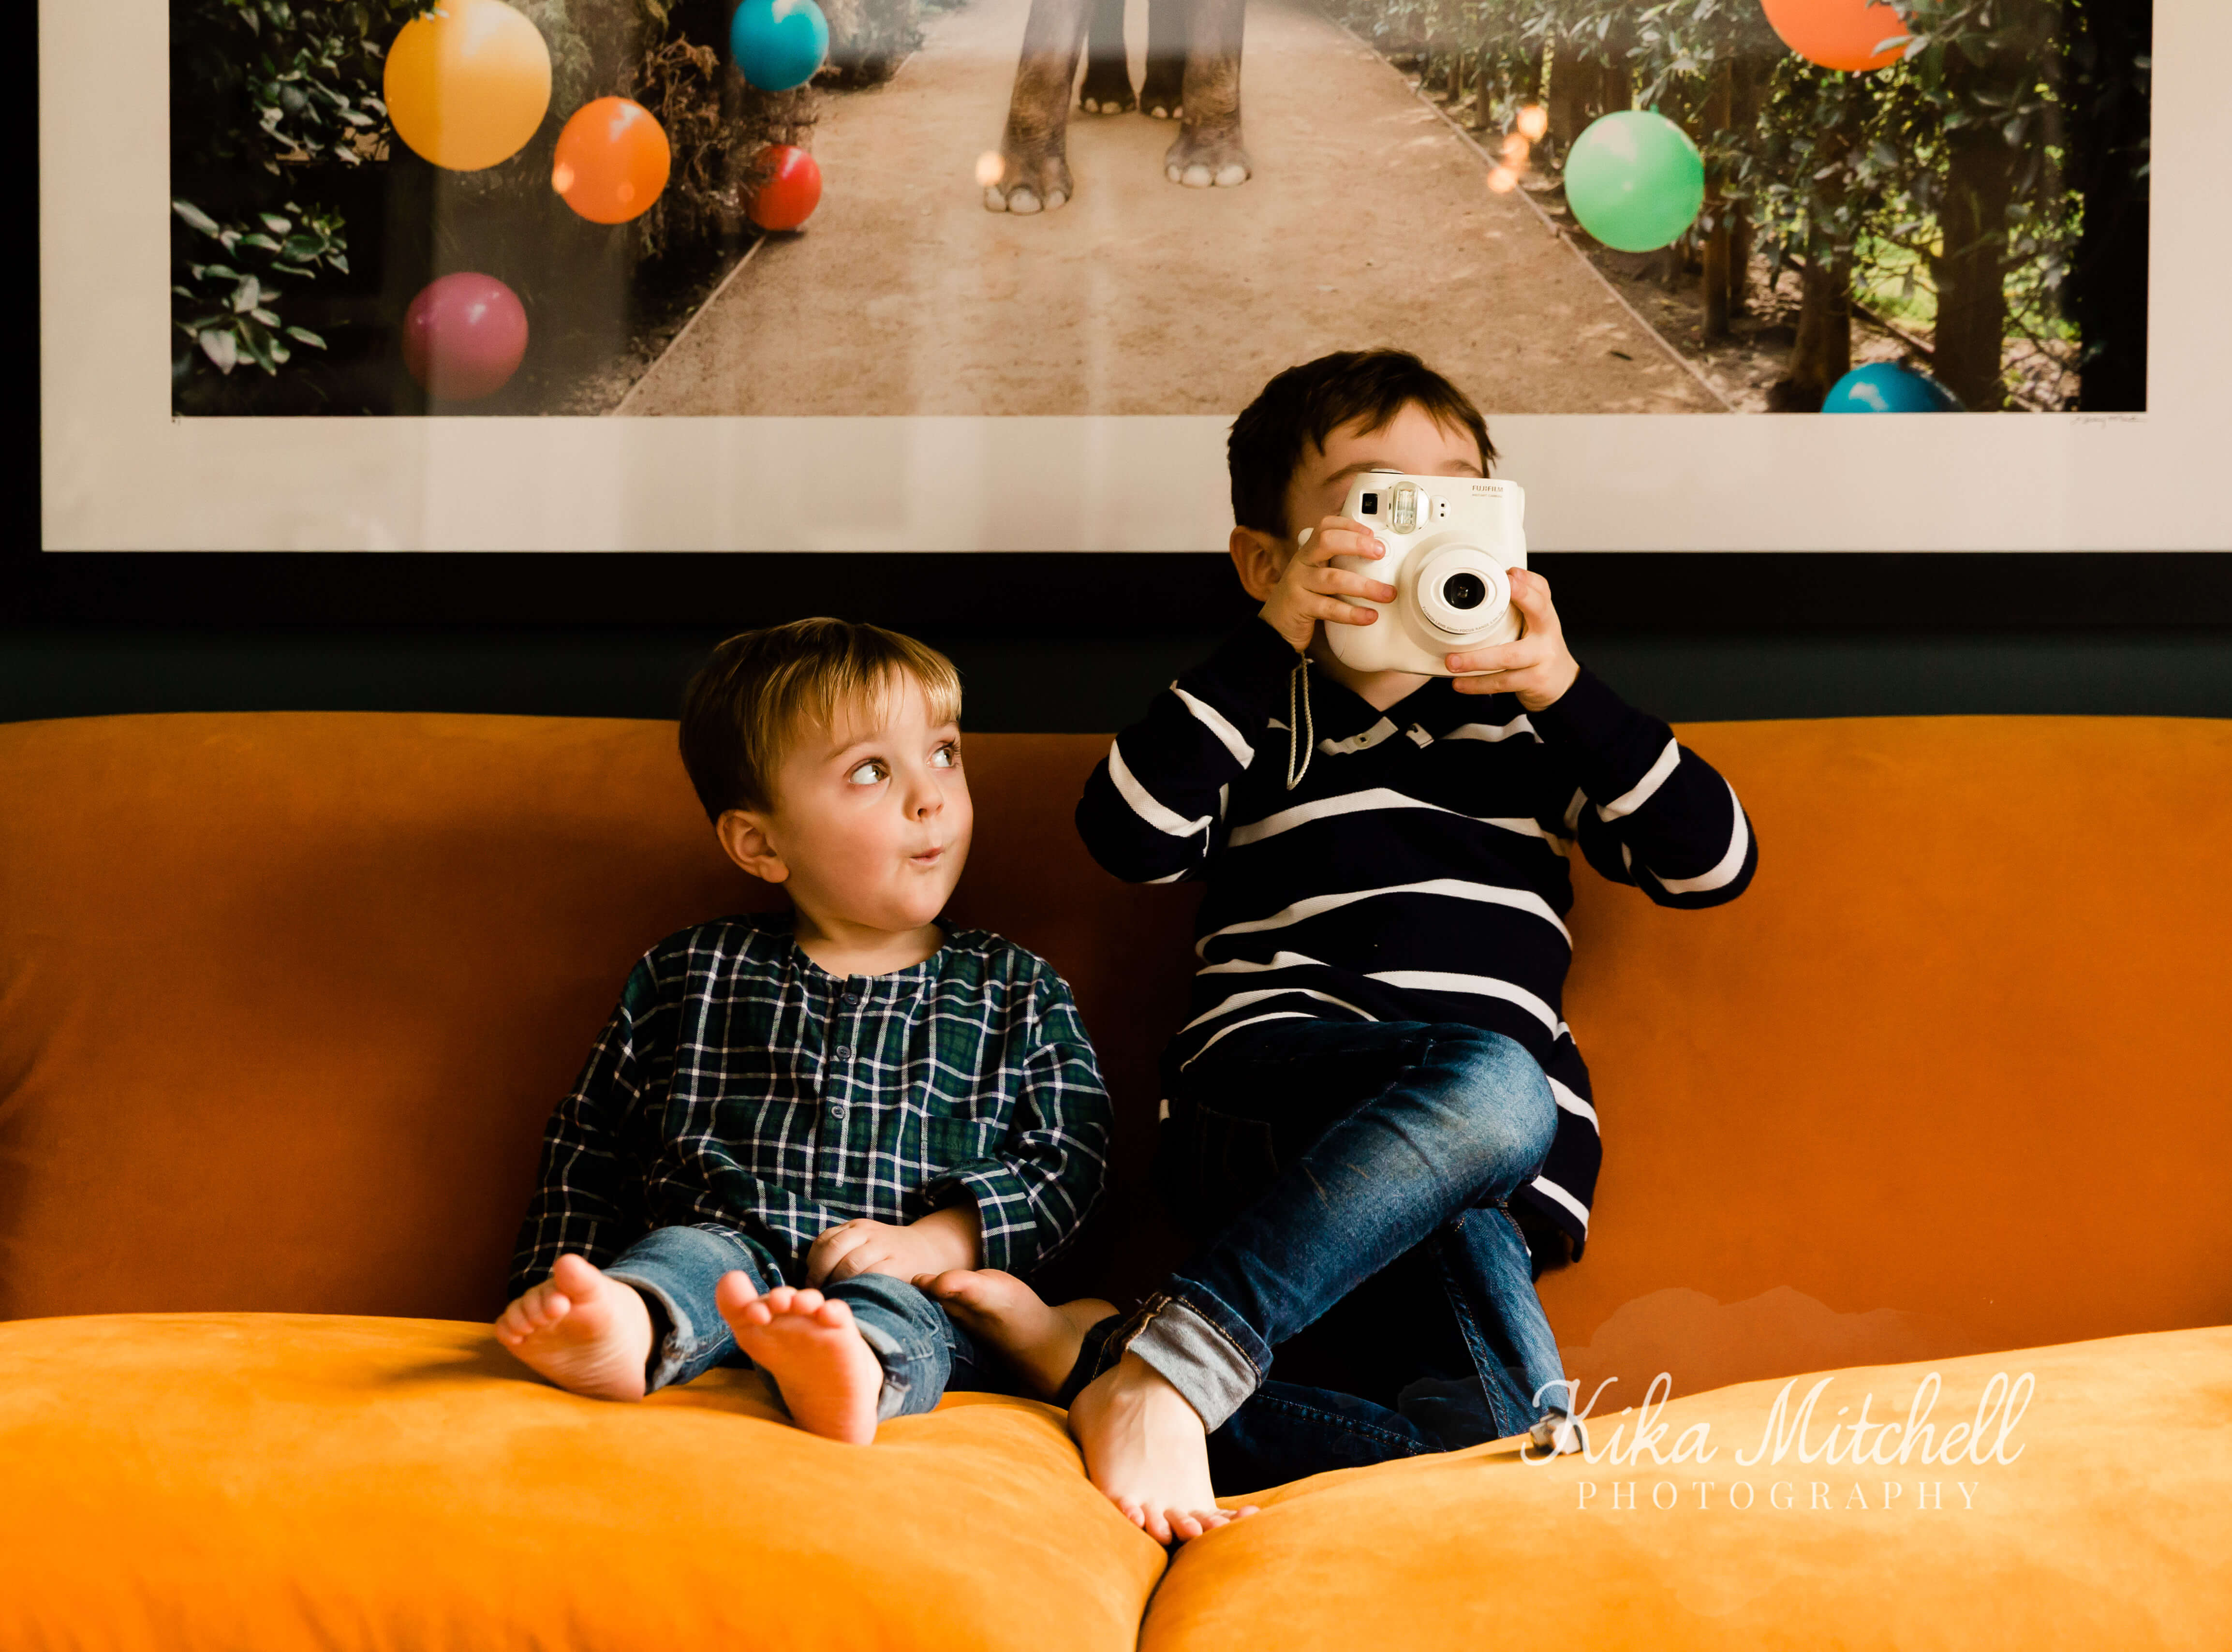 cute image of 2 brothers on orange sofa captured by Chelmsford photographer Kika Mitchell Photography on kitchen renovation inspiration shoot